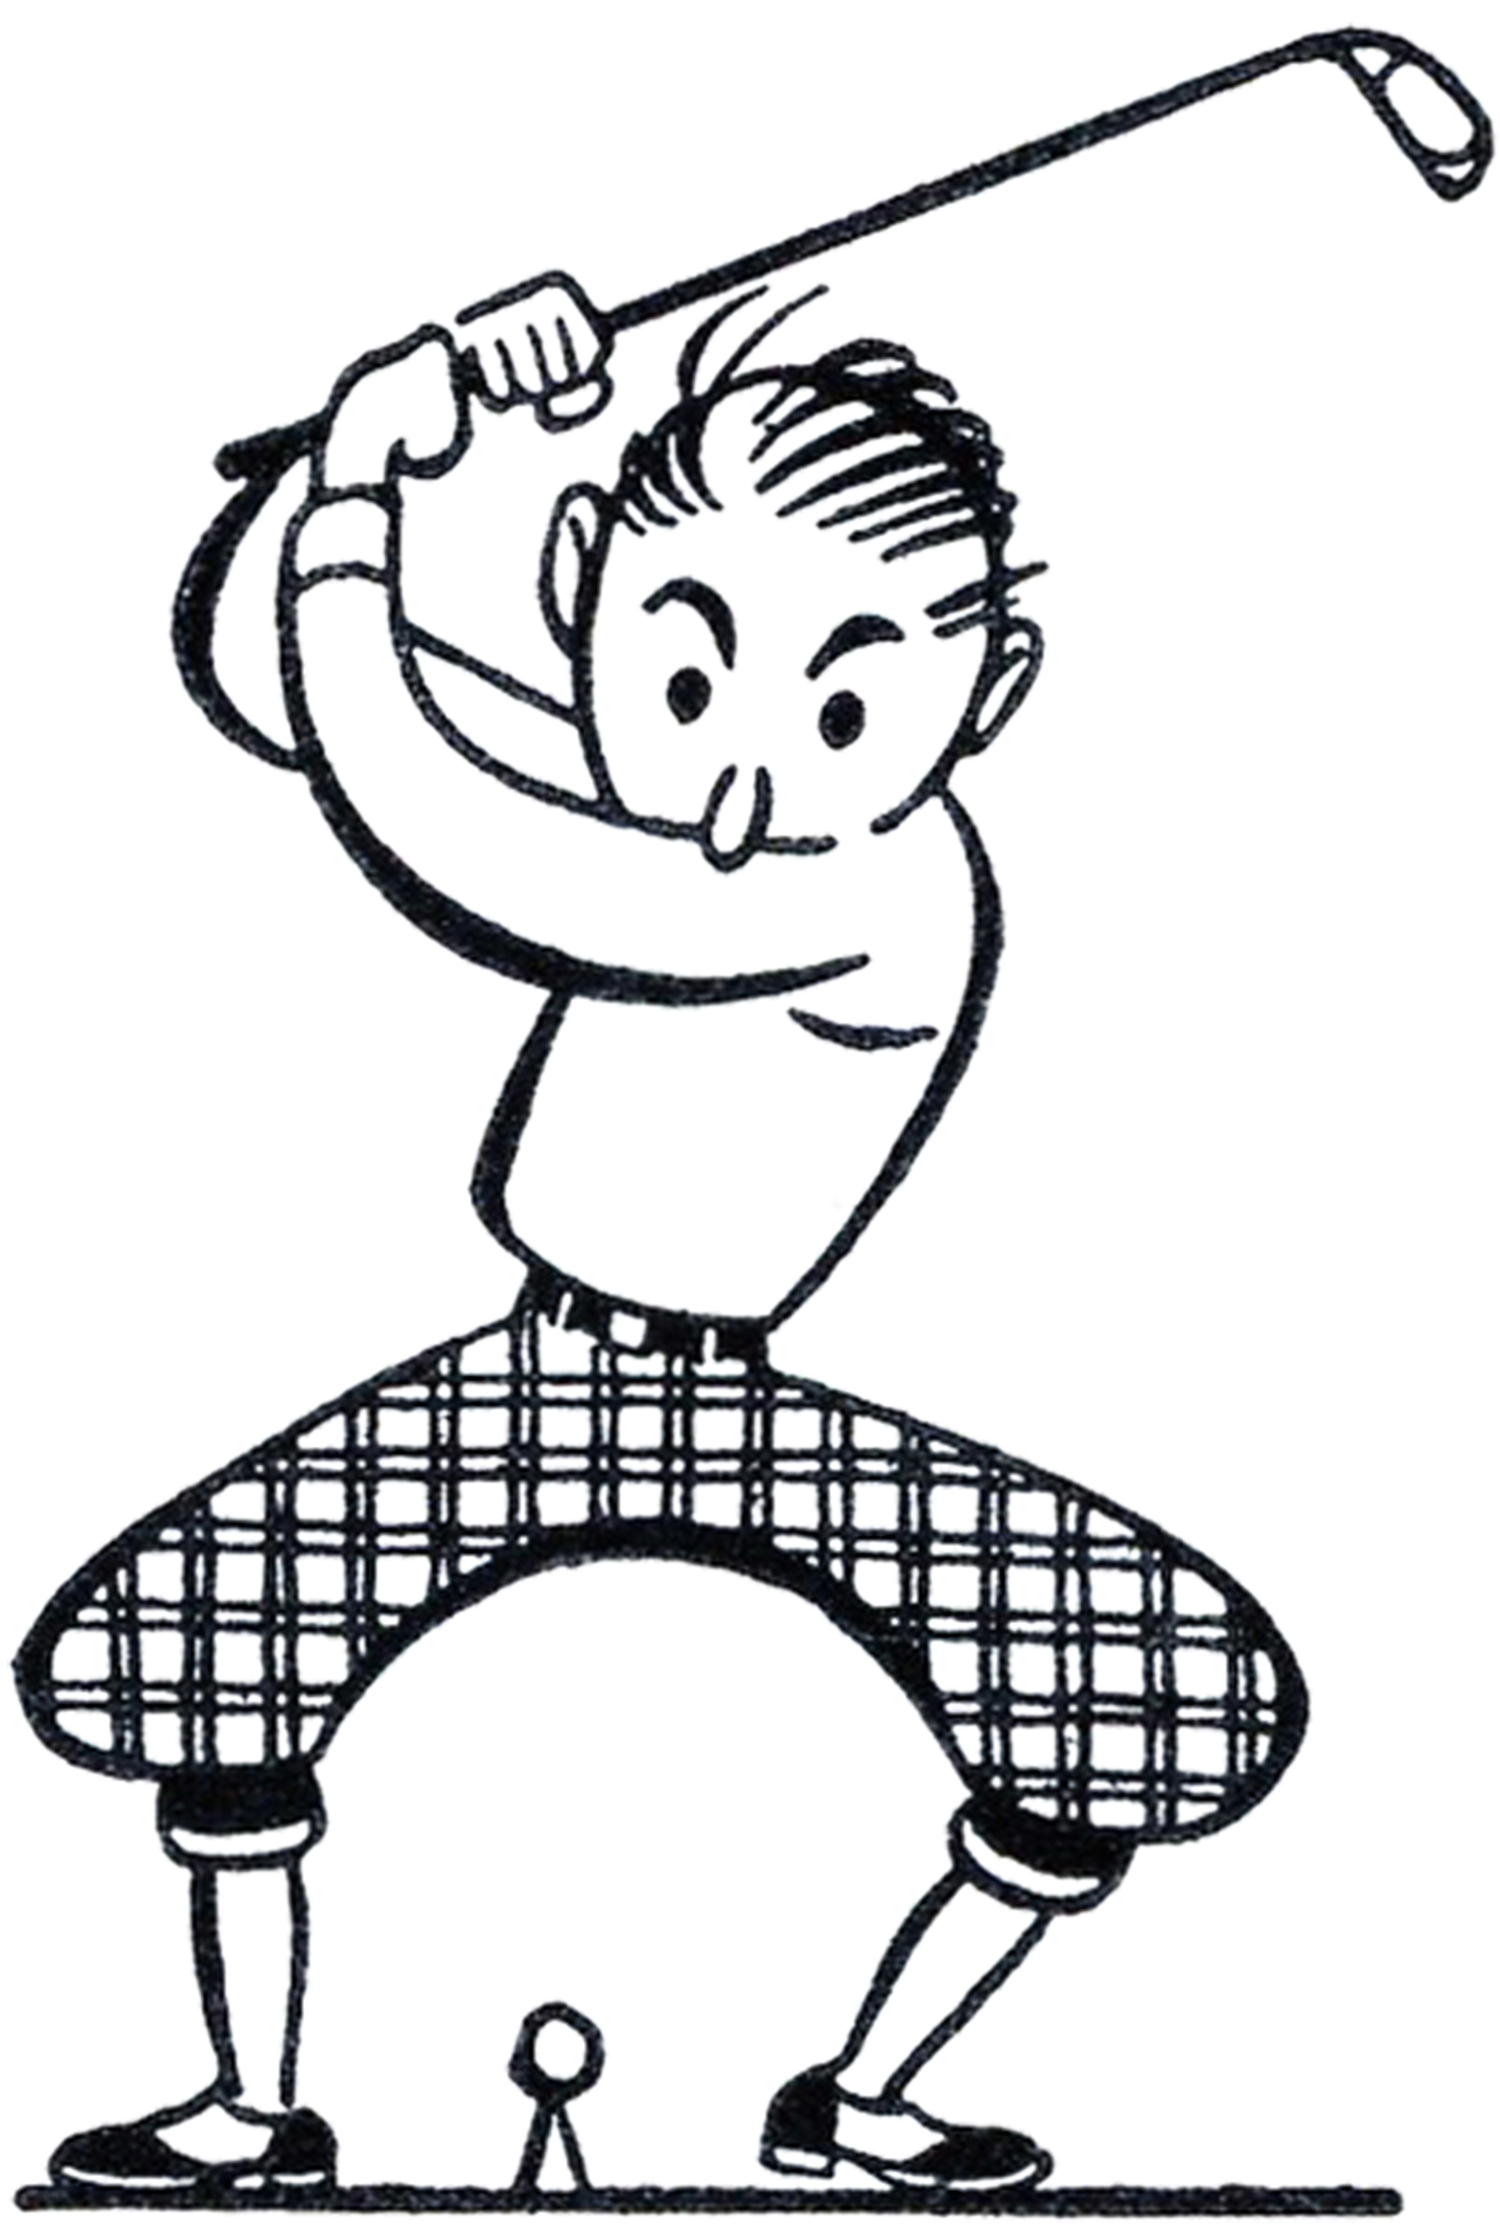 Golf Clip Art Microsoft Free Clipart Images 6